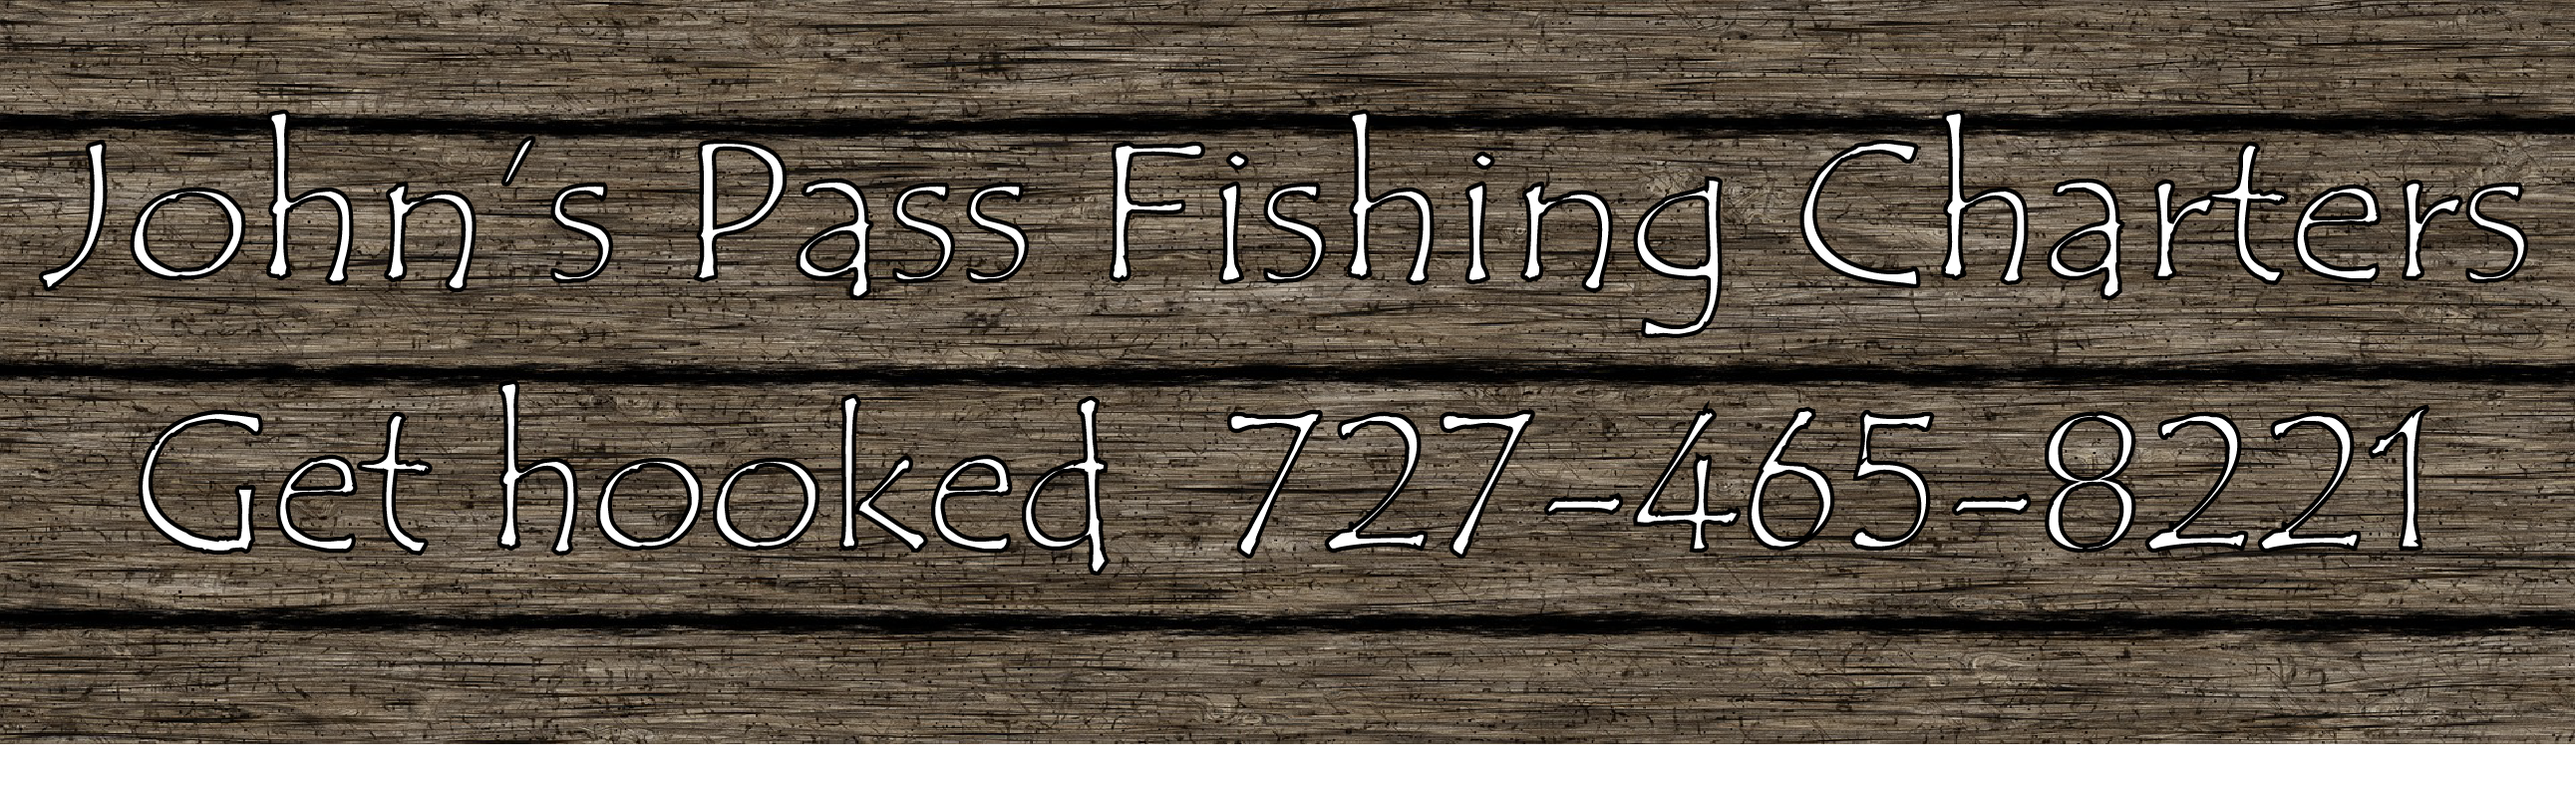 Johns Pass Fishing Charter